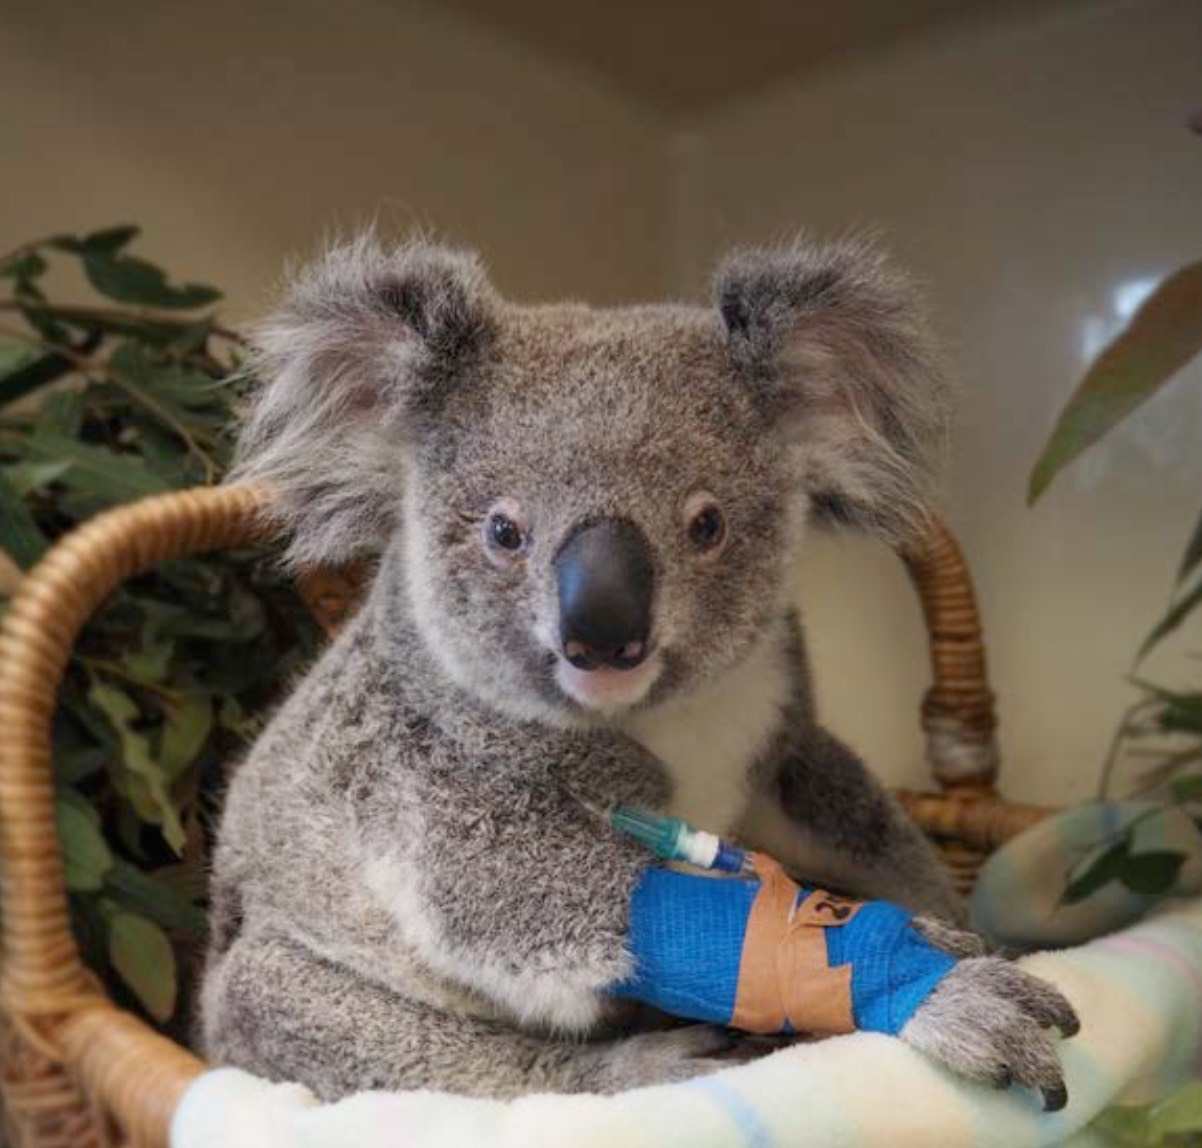 Minnik Chartered Accountants - Australia Zoo - Molly the Koala Joey